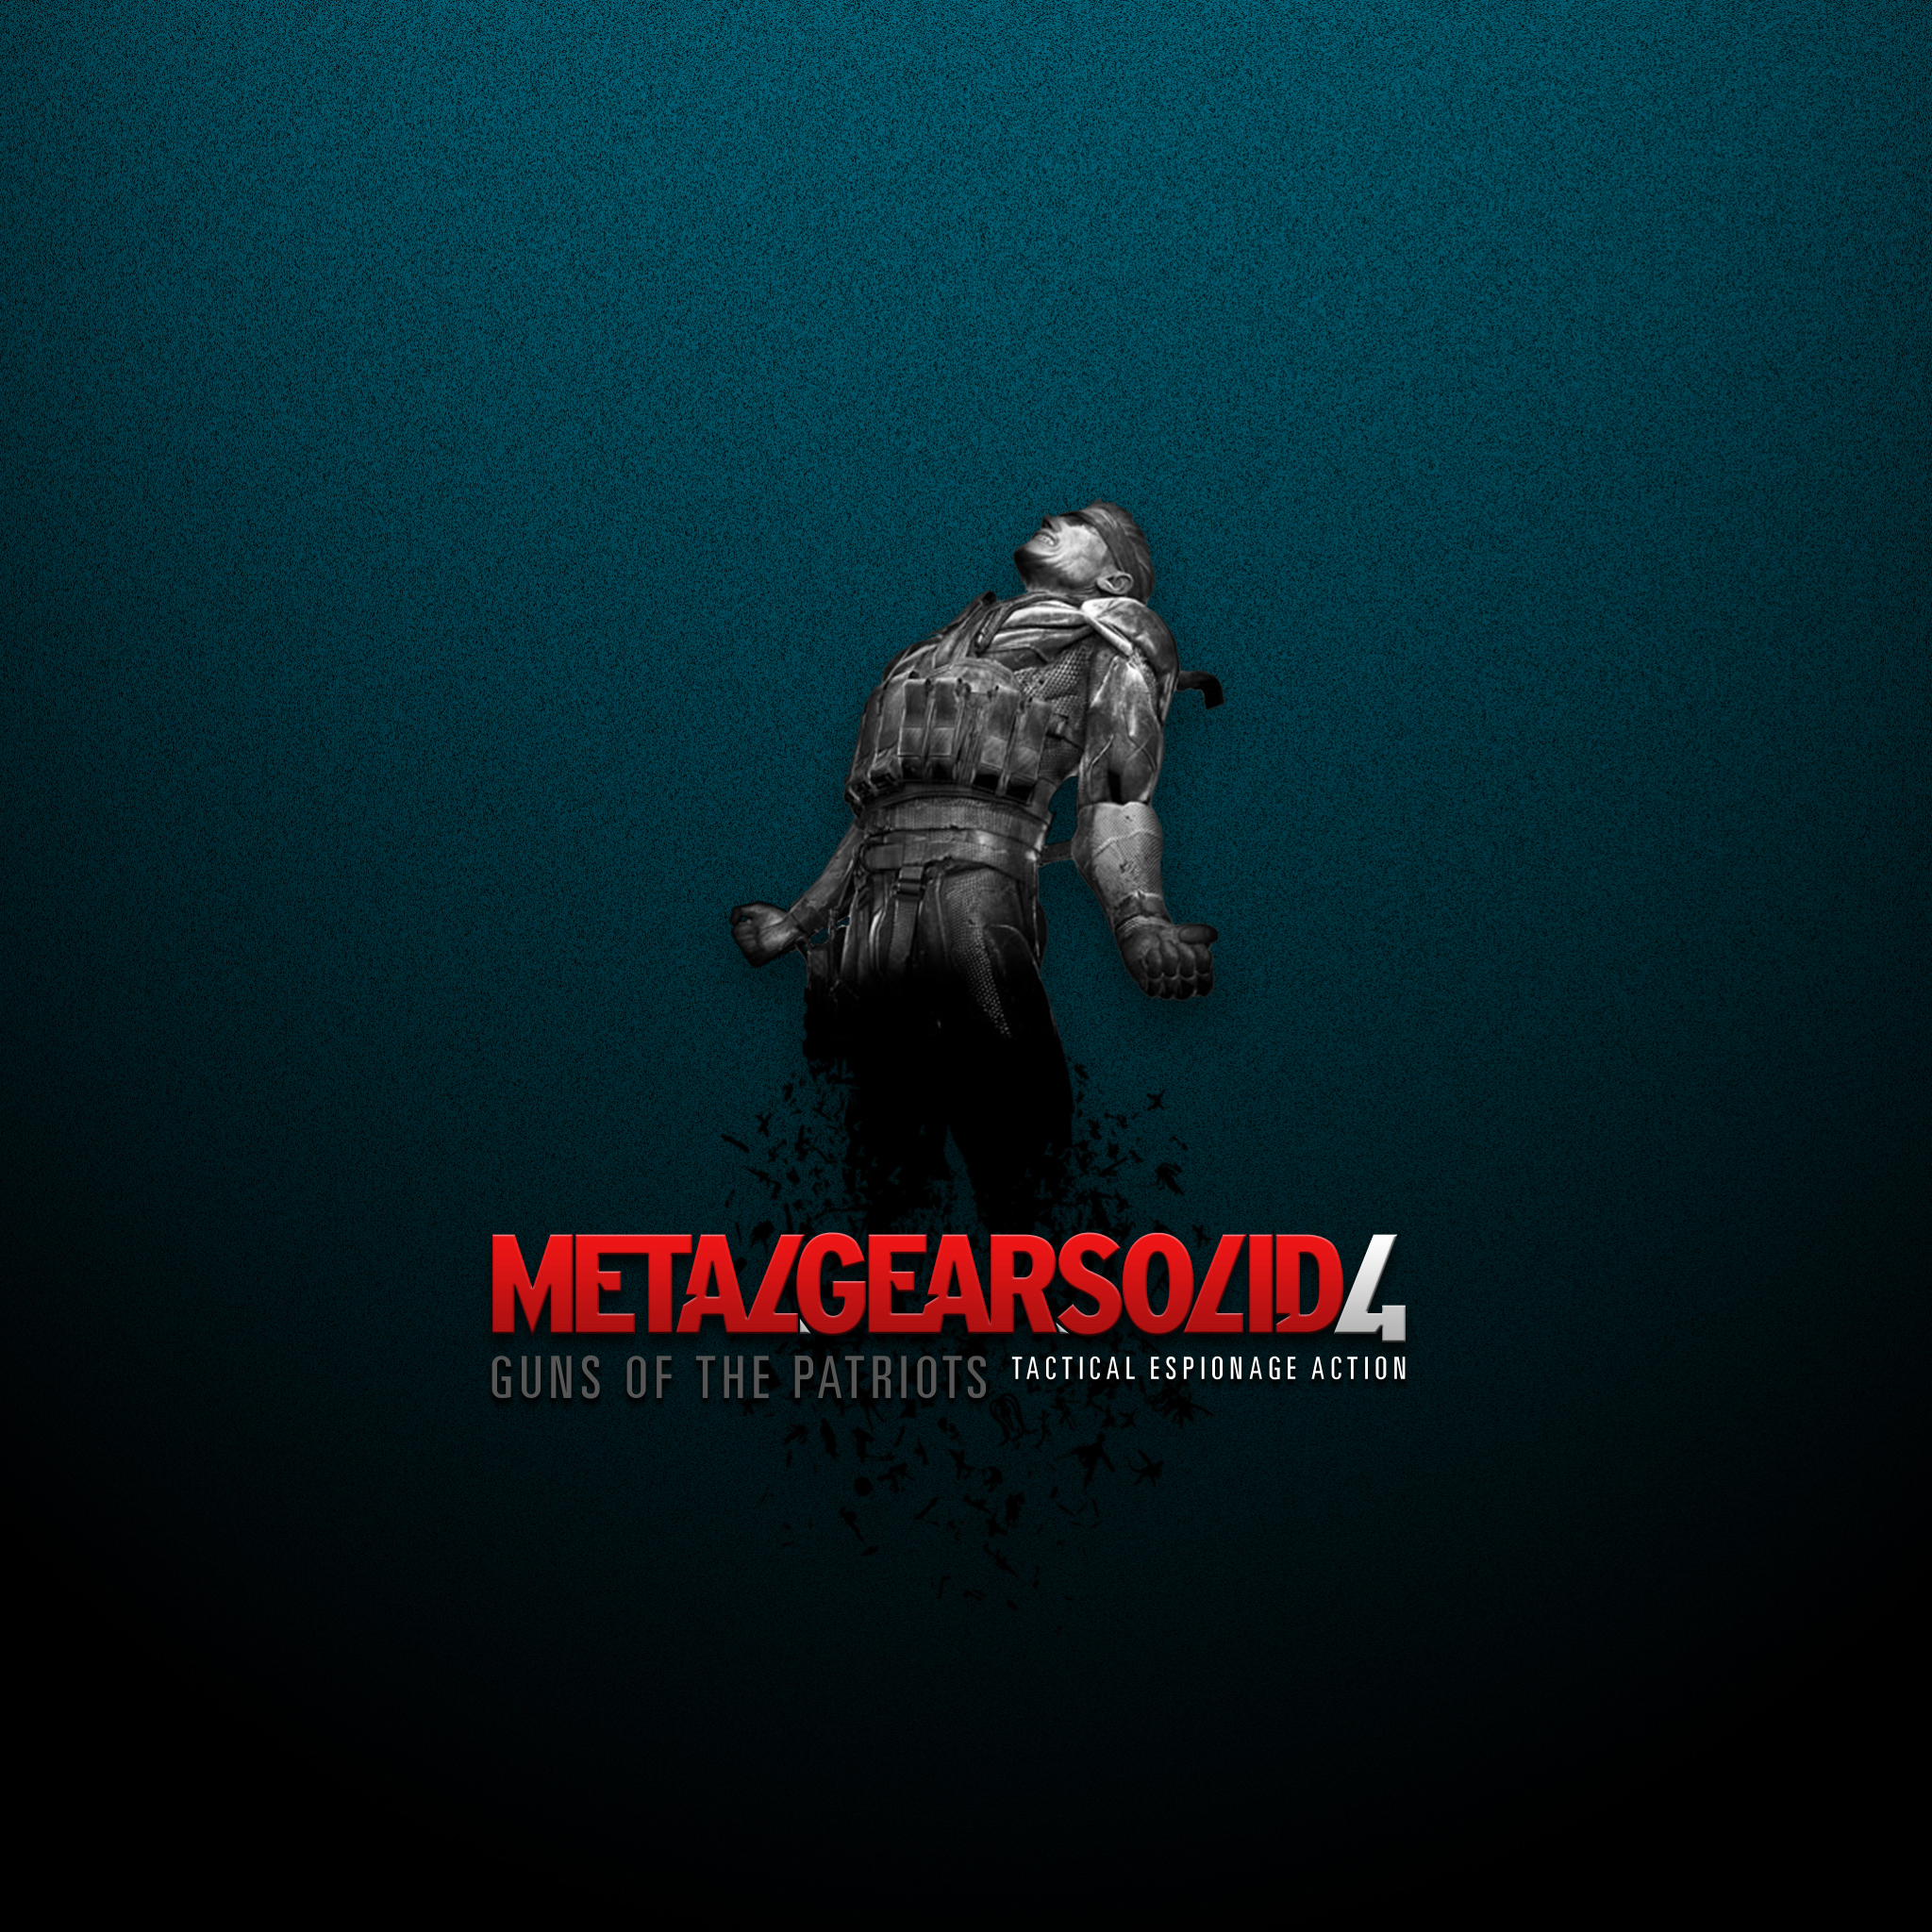 Metal-Gear-Solid-4-3Wallpapers-iPad-Retina